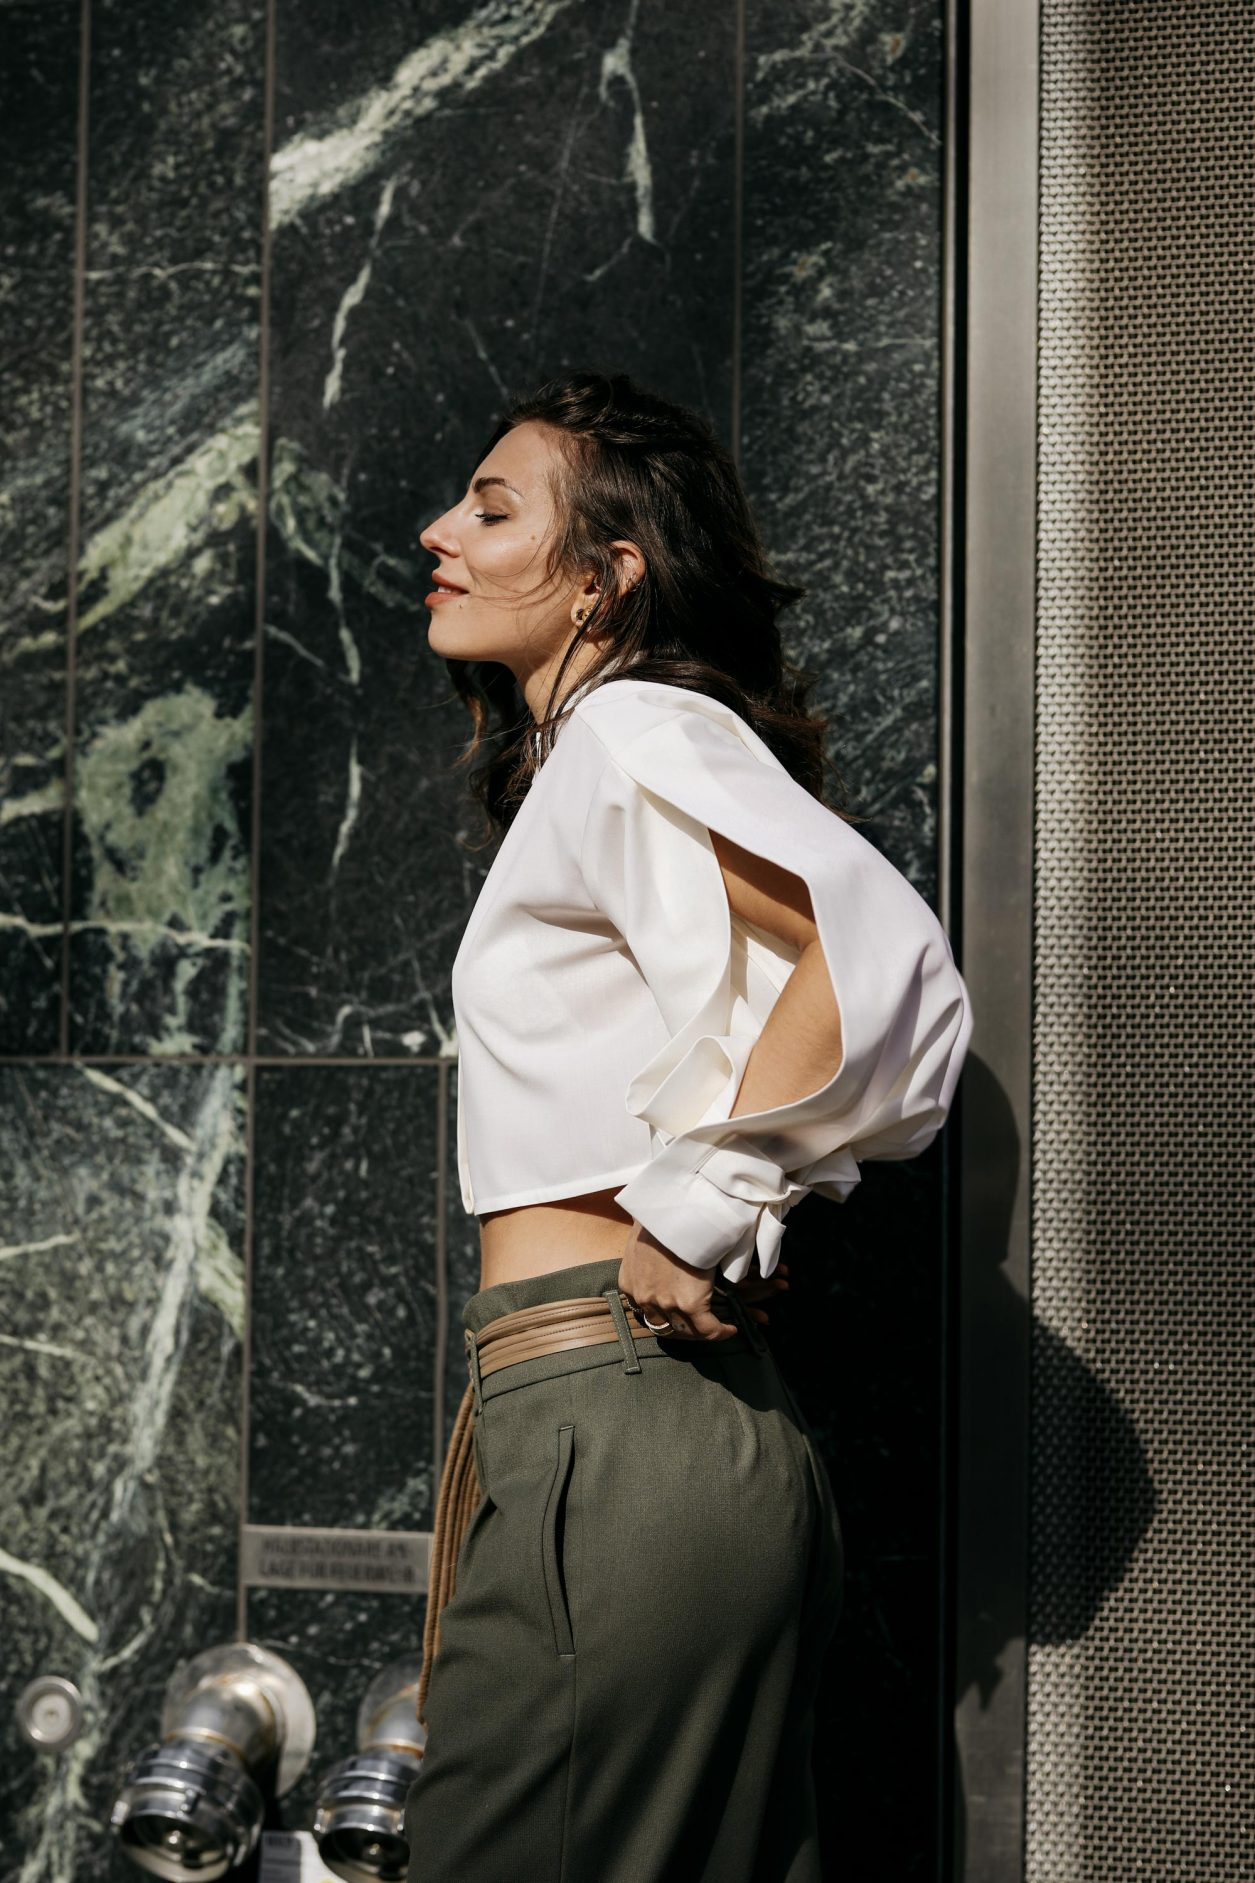 Anzeige | Streetstyle by Masha Sedgwick, photos: Jeremy Moeller | Spring summer fashion trends, everyday outfit inspiration, military chick city look: wearing khaki boyfriend pants by Munthe, white cropped Nobi Talai blouse